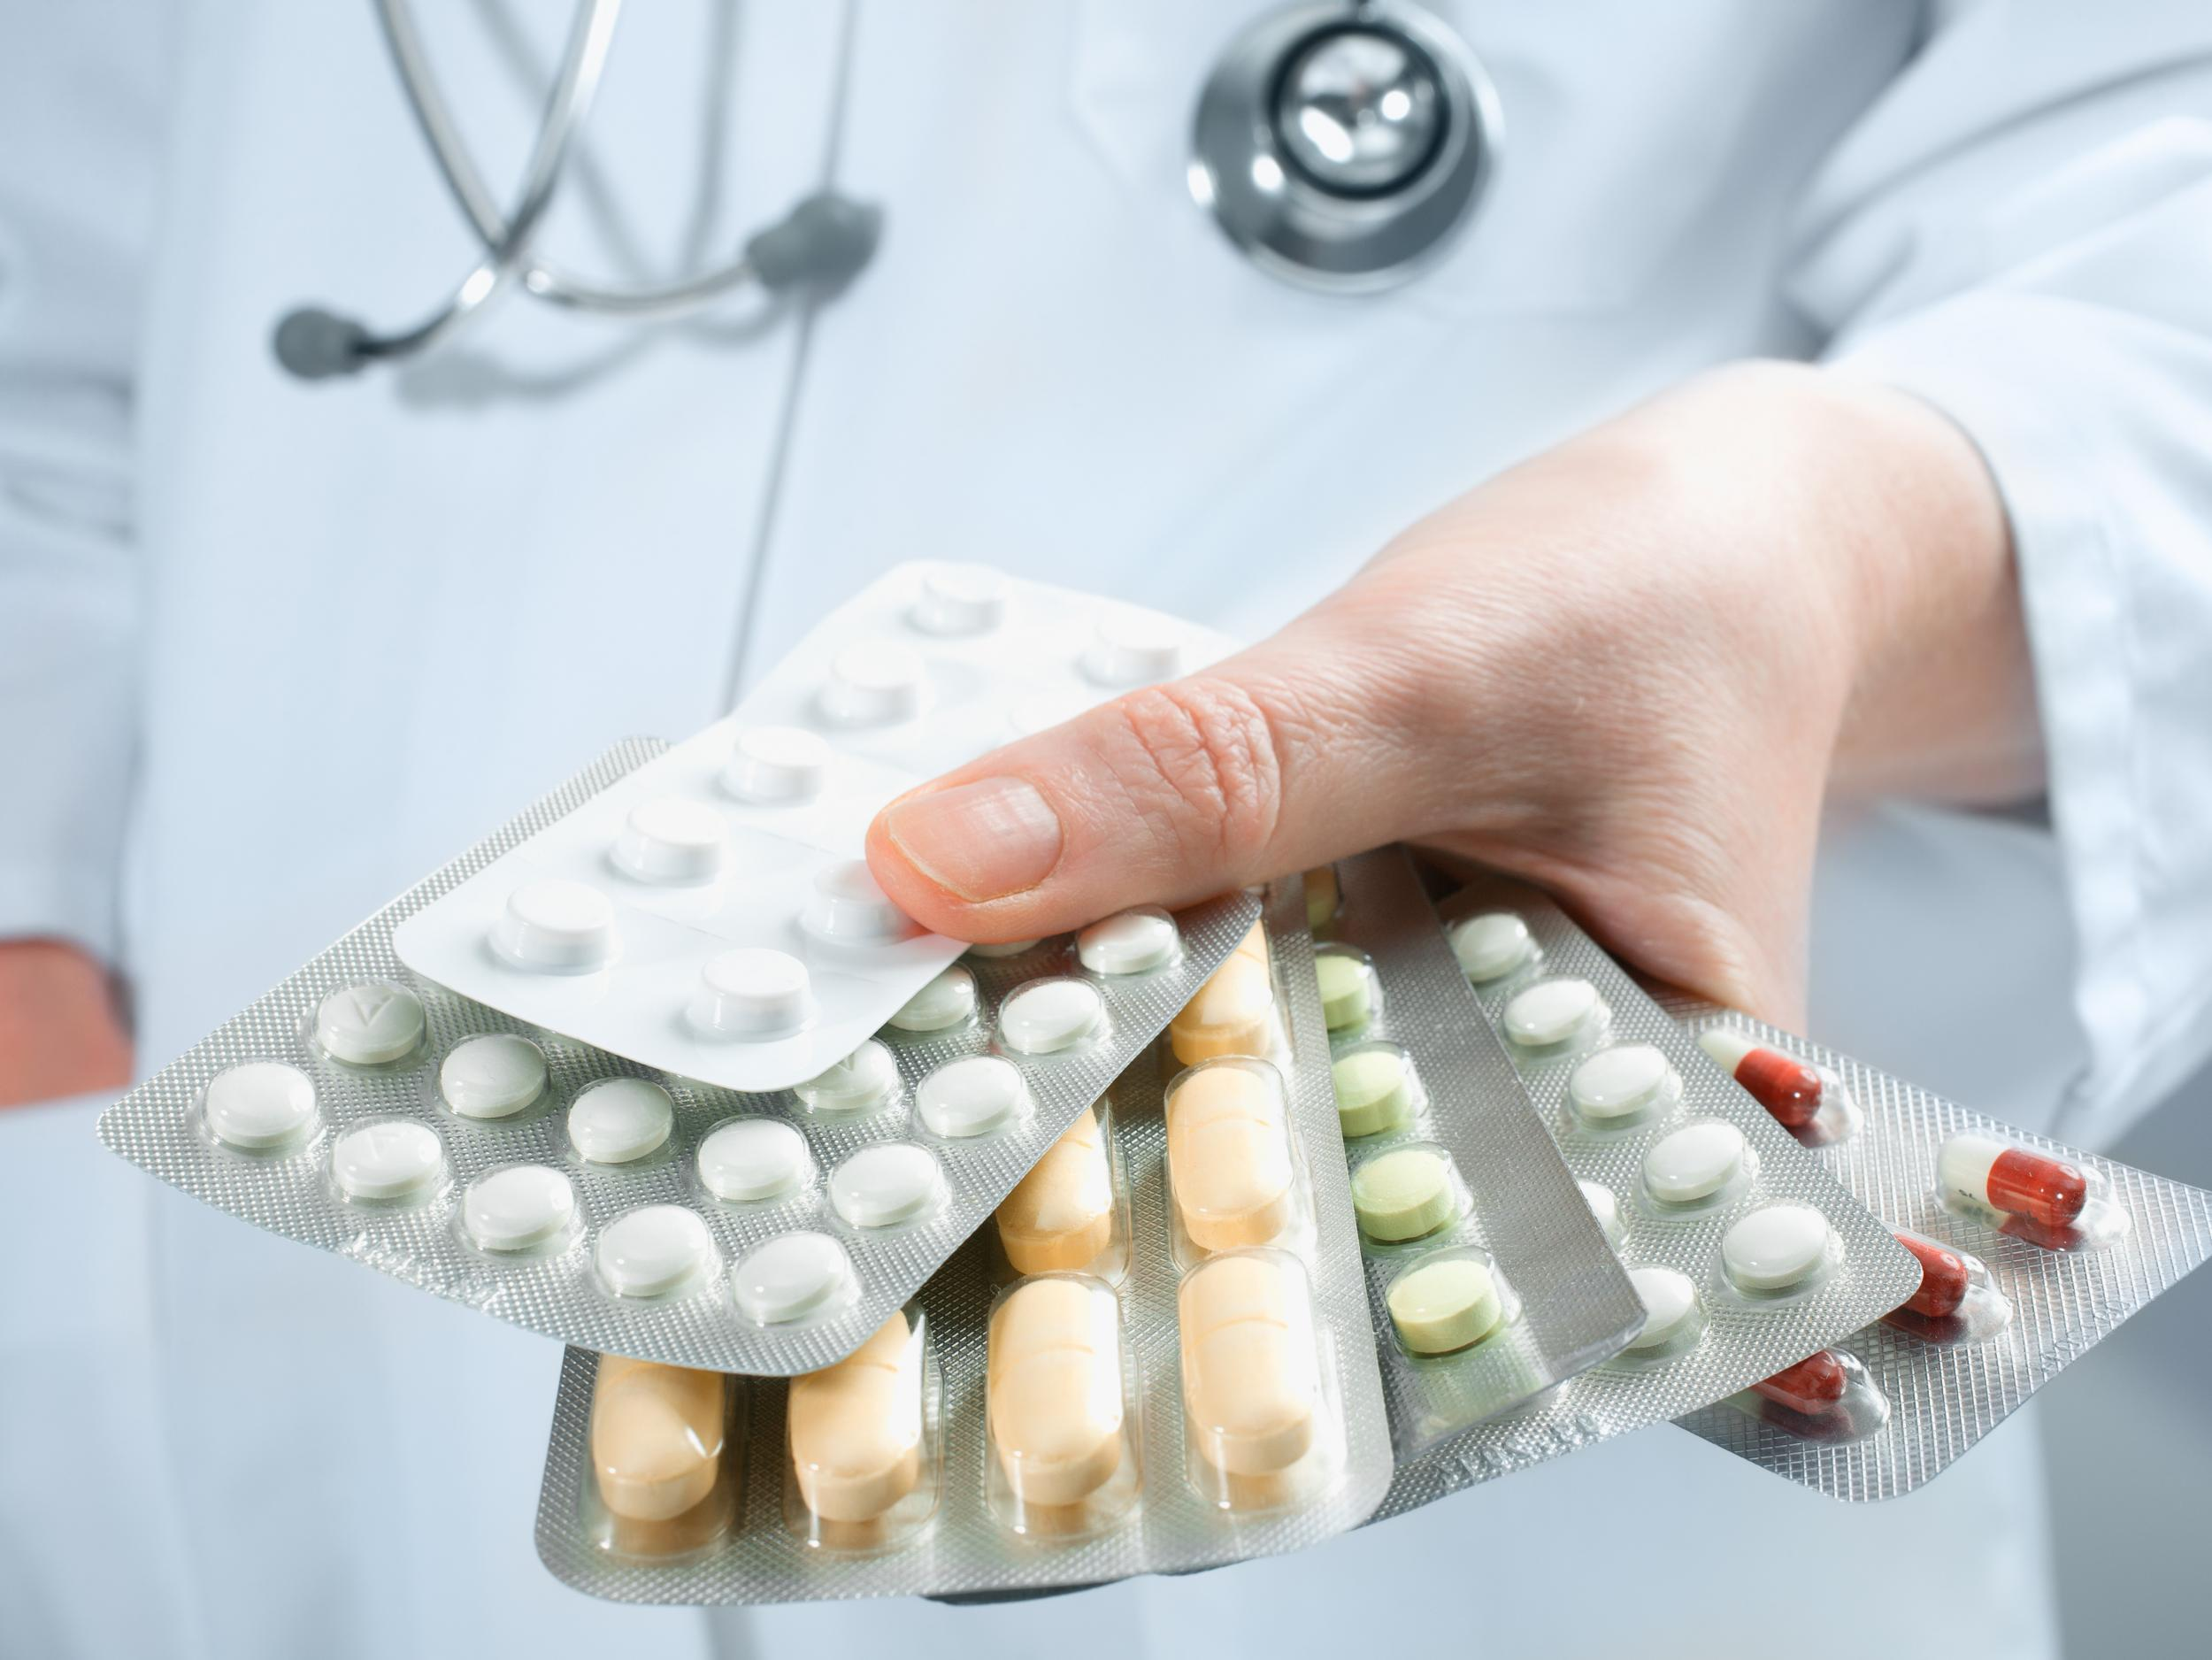 Antibiotics: How beneficial side effects are starting to come to light